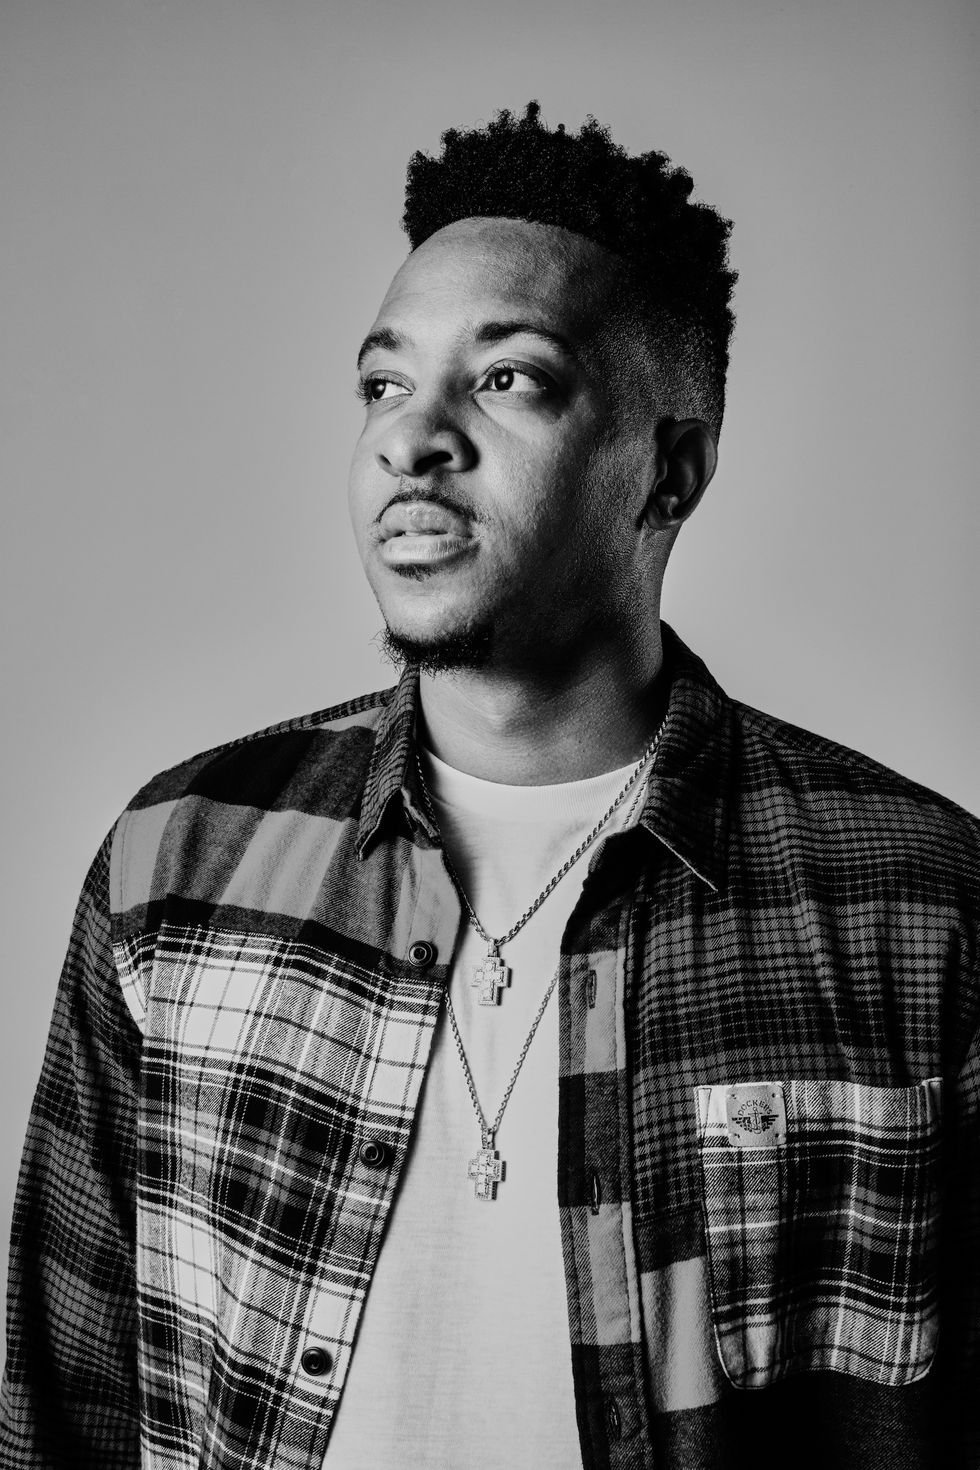 CJ McCollum on Style, Balance, and What Being a Role Model Means to Him